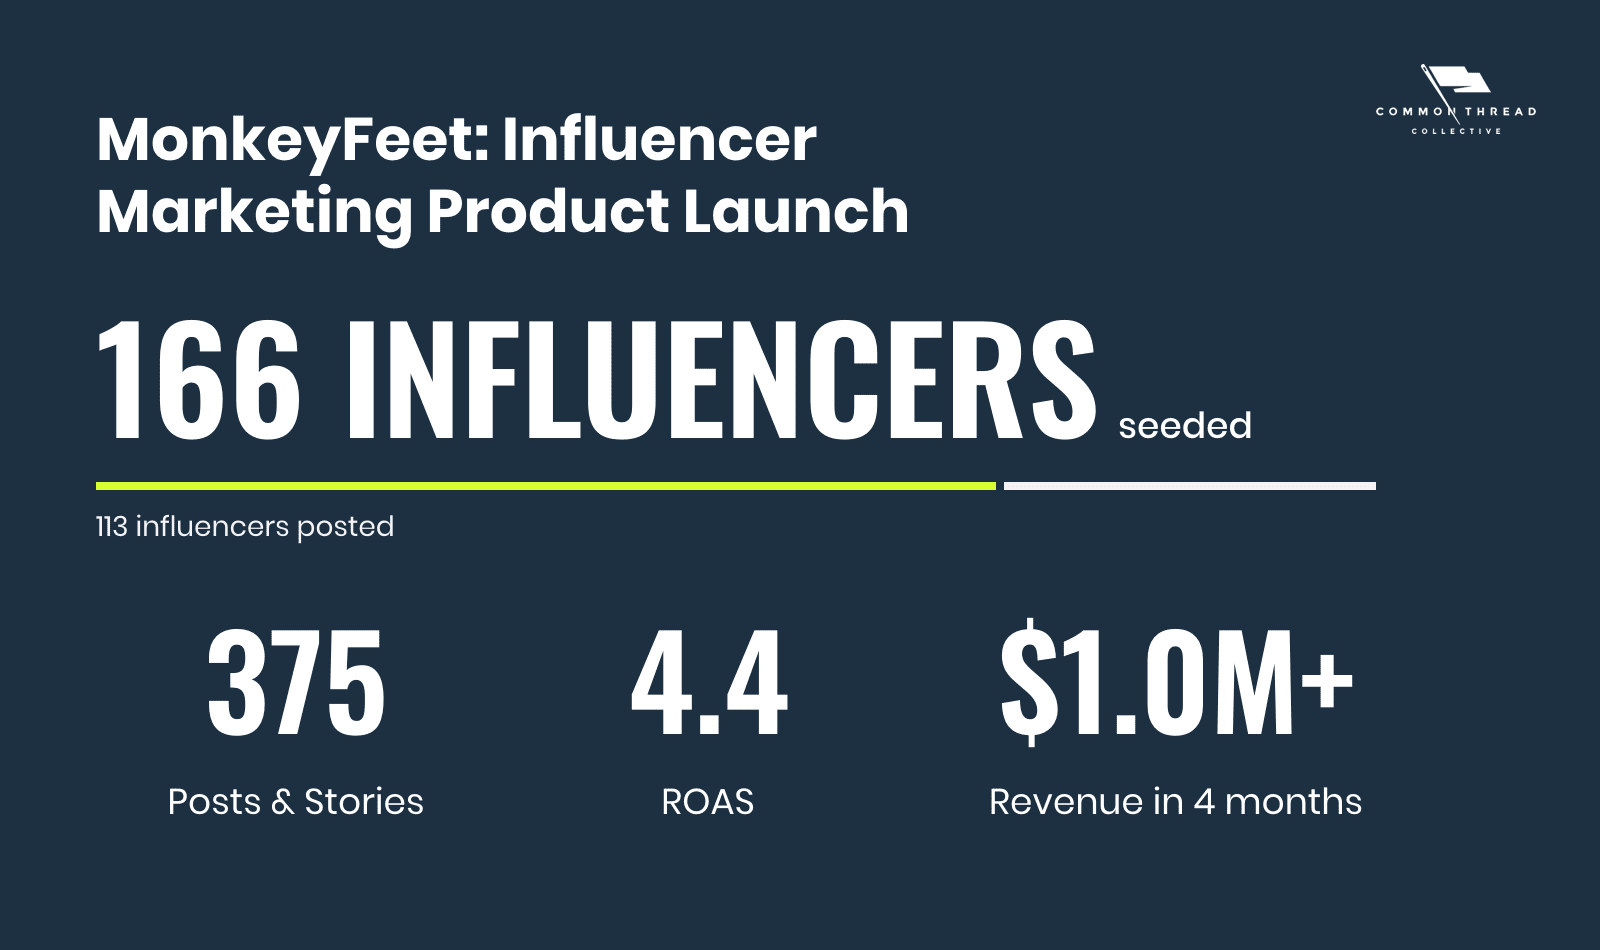 MonkeyFeet: Ecommerce Influencer Marketing Product Launch by the numbers